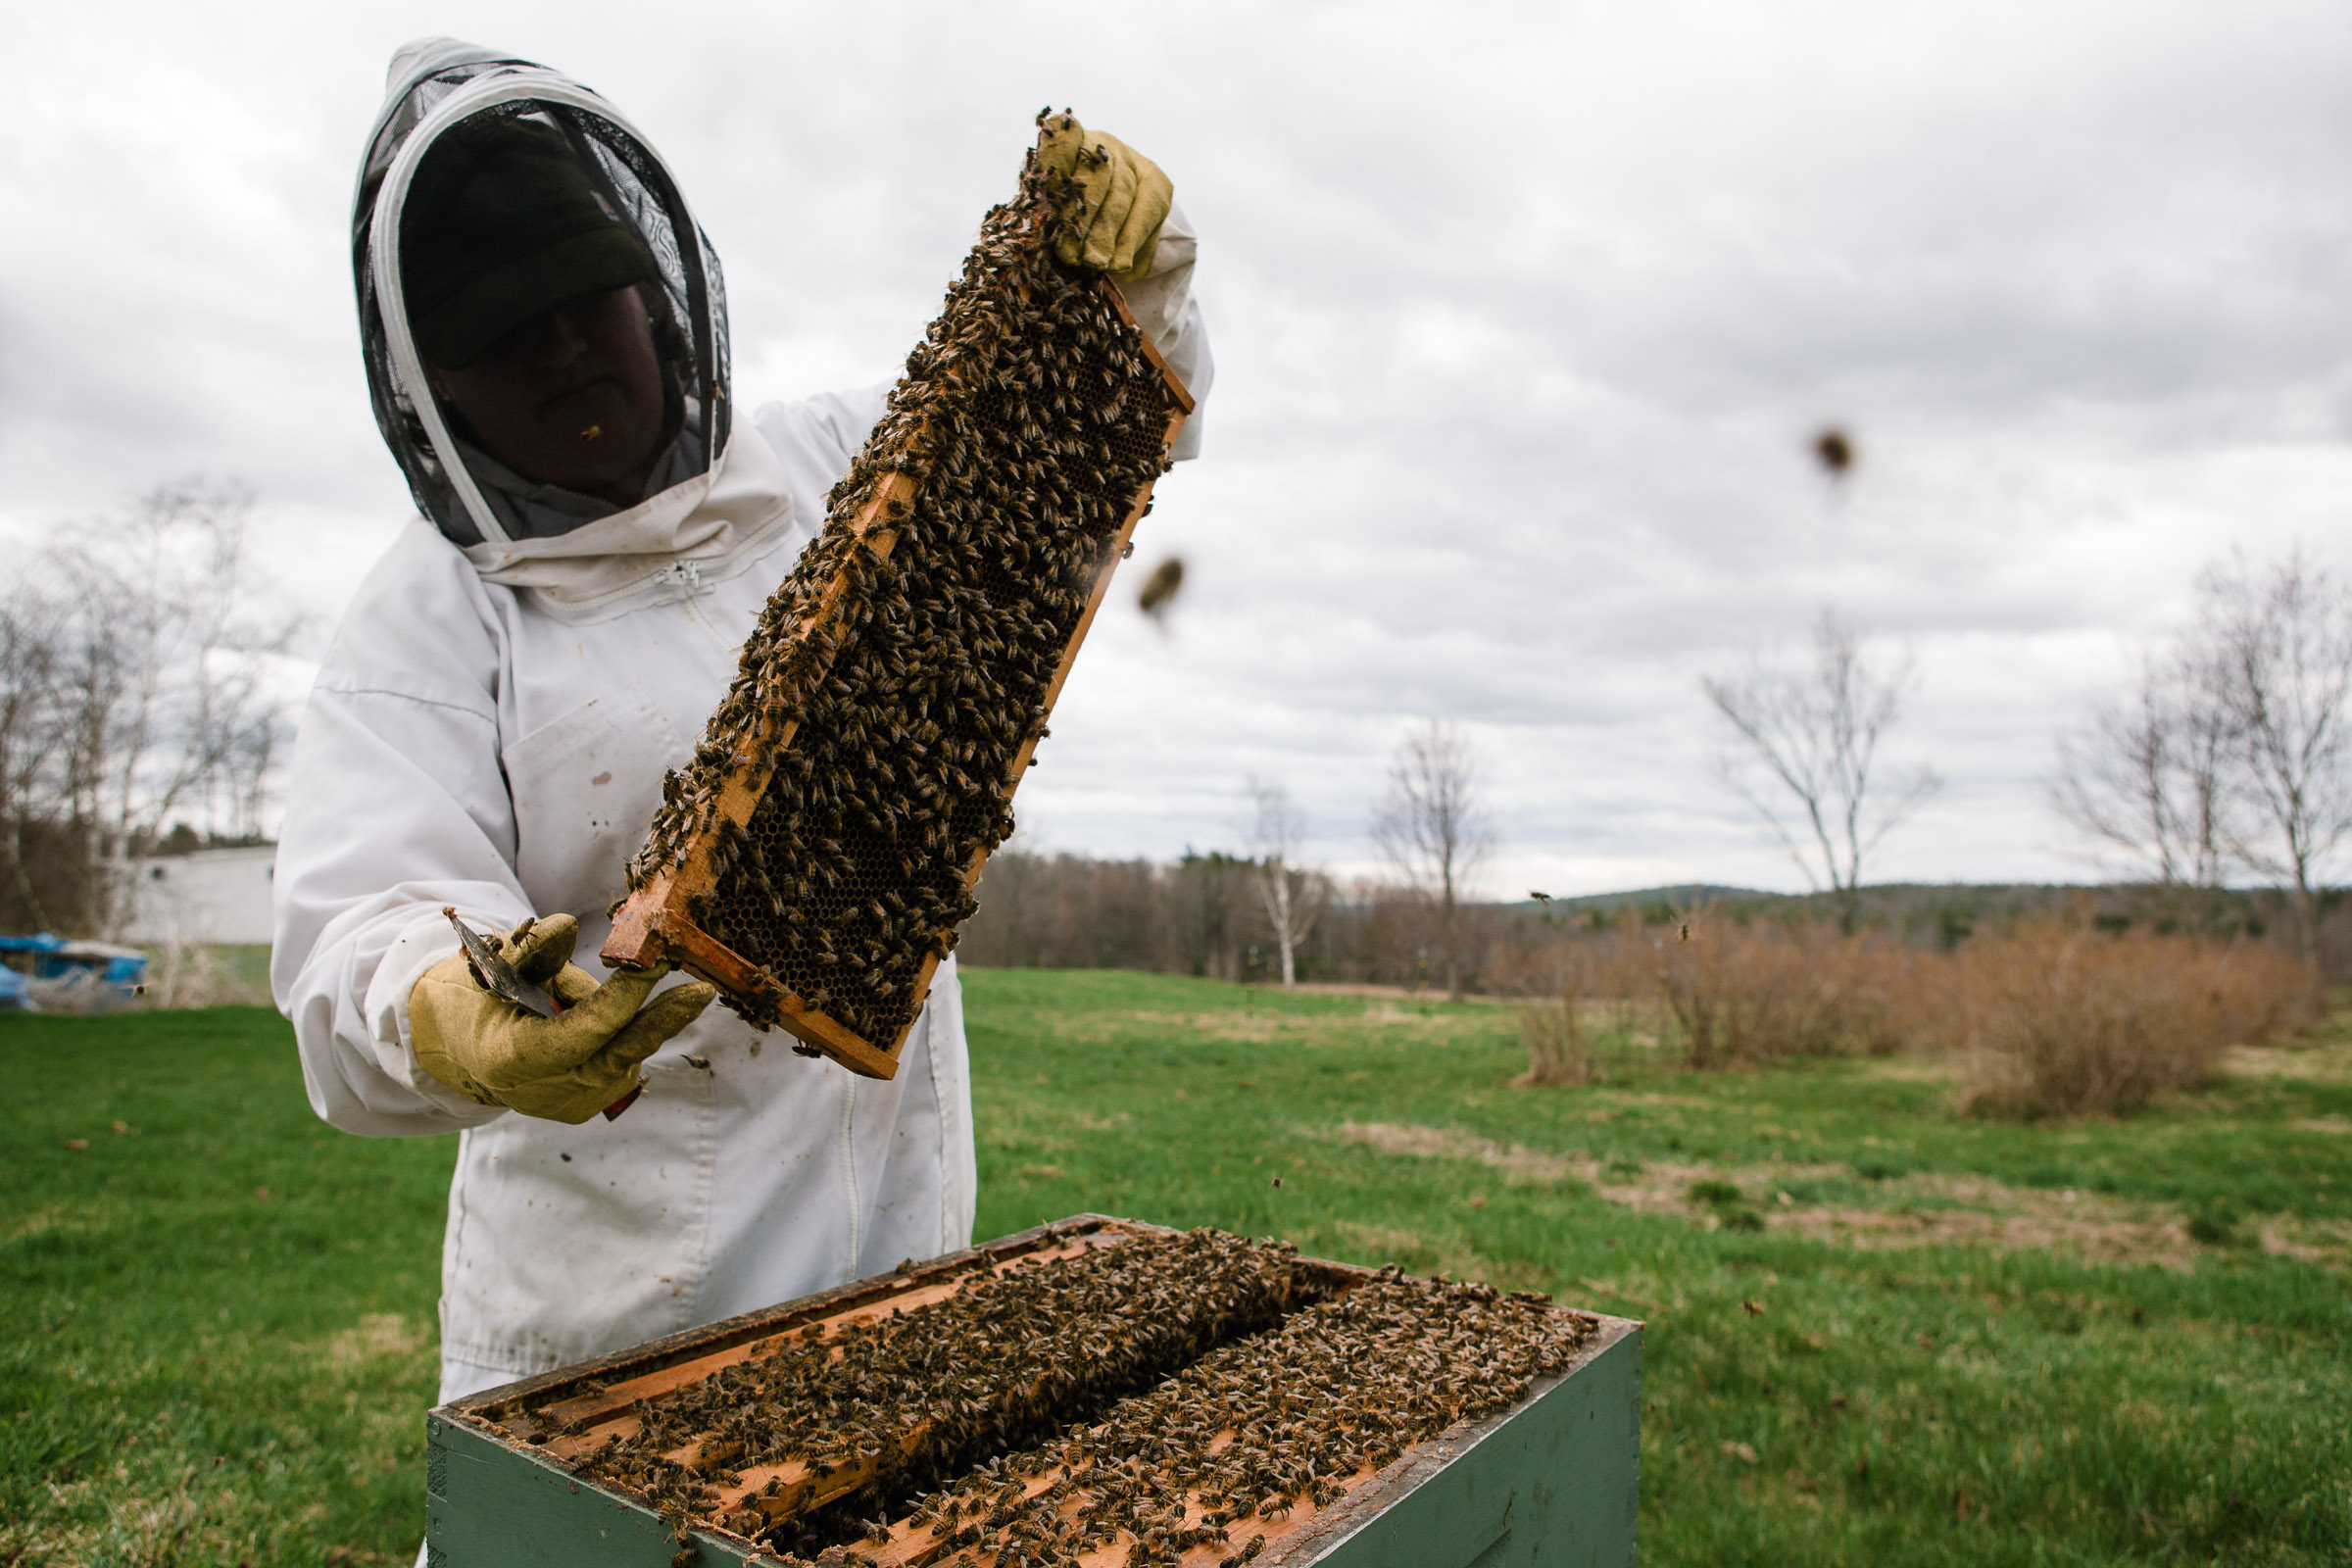 agri_bees_April2013_by_Lomanno_0076.jpg